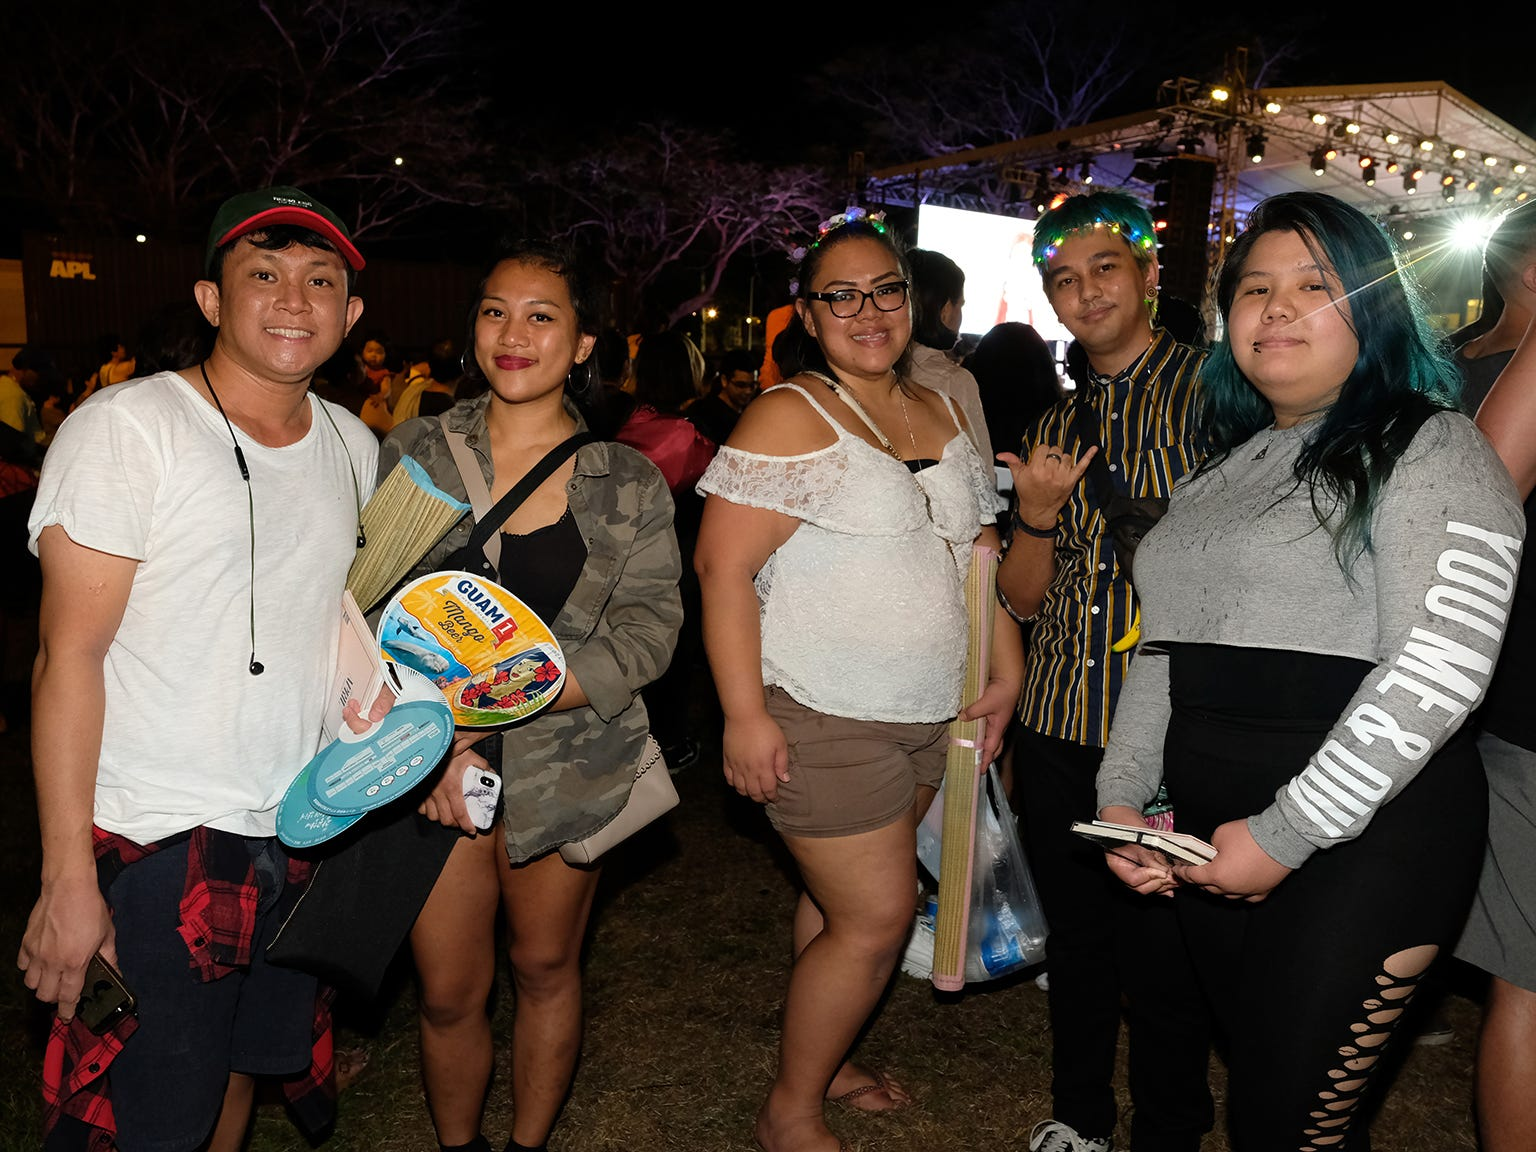 From left, K-pop fans Lloyd Halina, Eliza Torres, Raylani Meno, Terence Gogue and Amber Babauta at the MBC Music K-Pop Concert Saturday evening, December 1, 2018 at the Governor Joseph Flores Memorial Park.